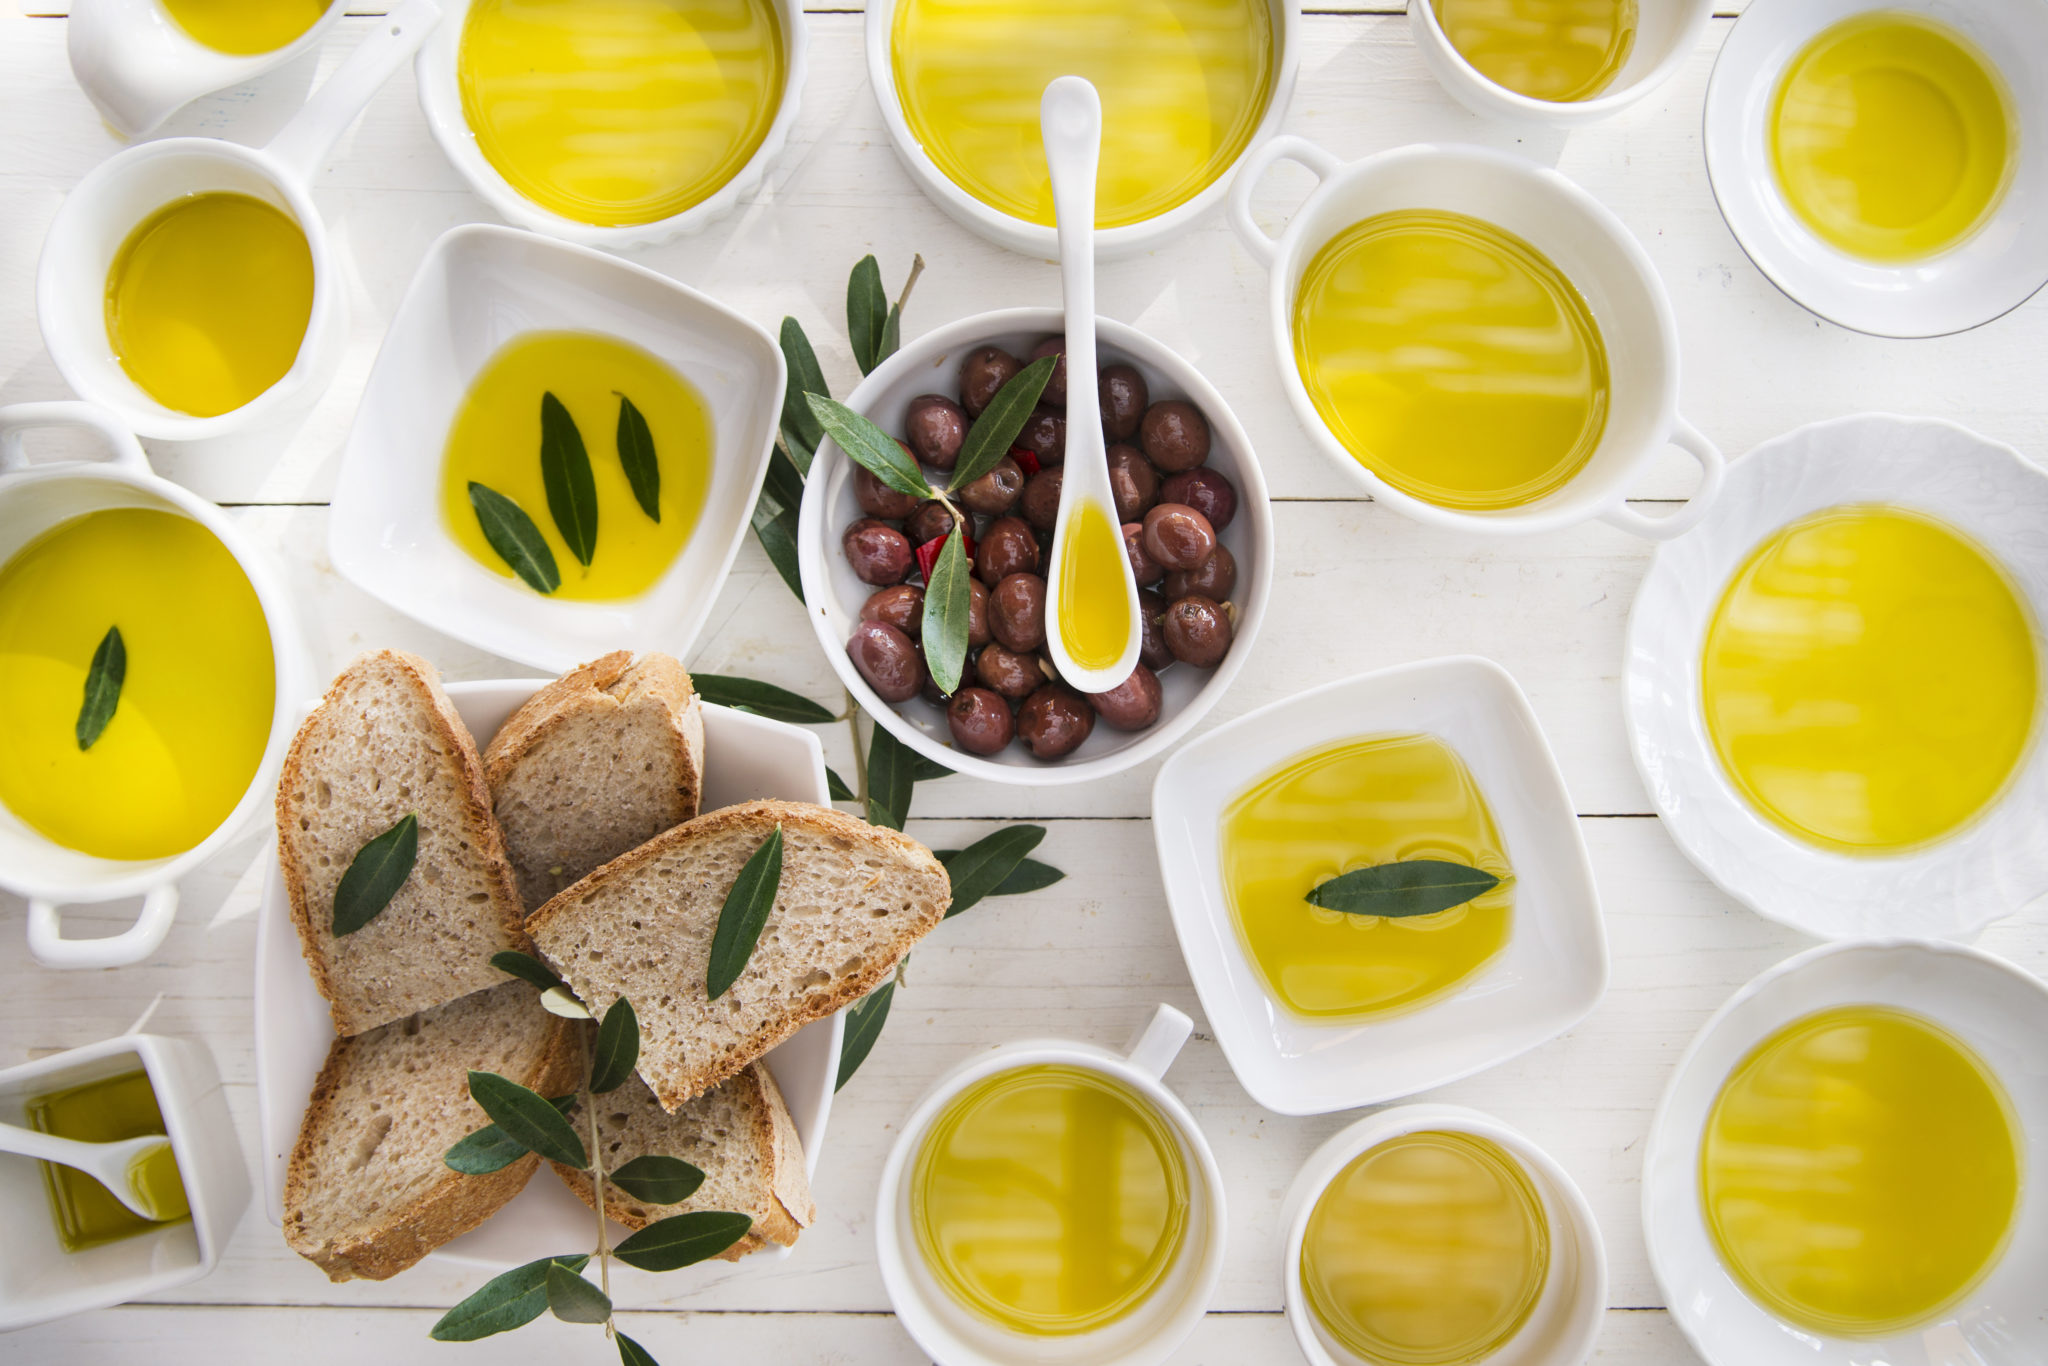 Comparing different cooking oil – which should you use?